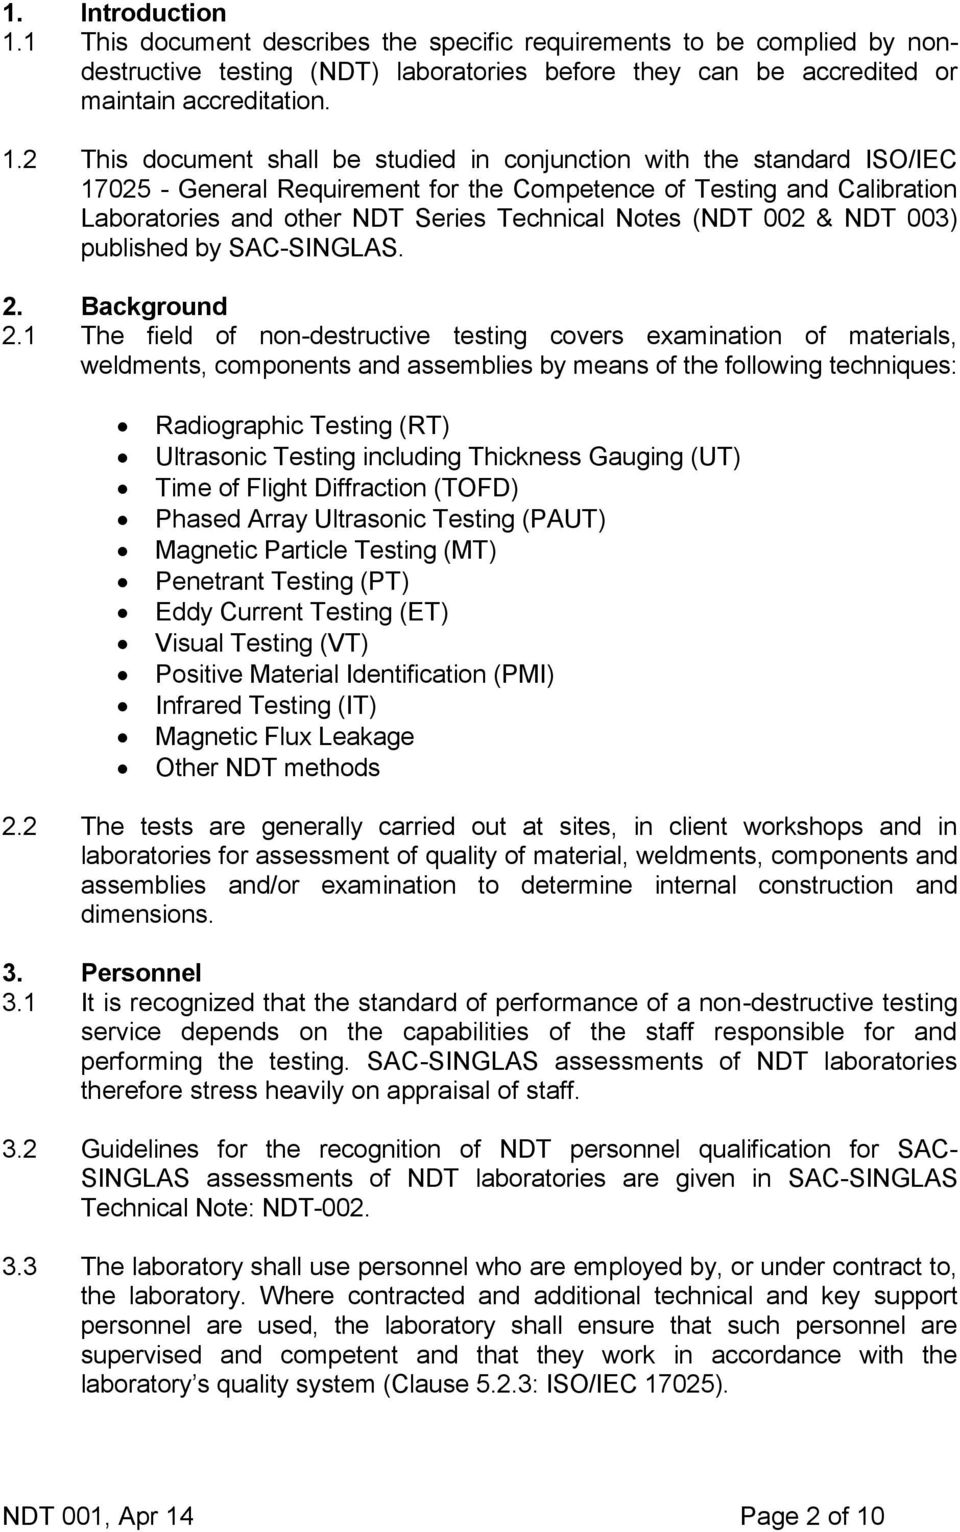 2 This document shall be studied in conjunction with the standard ISO/IEC 17025 - General Requirement for the Competence of Testing and Calibration Laboratories and other NDT Series Technical Notes